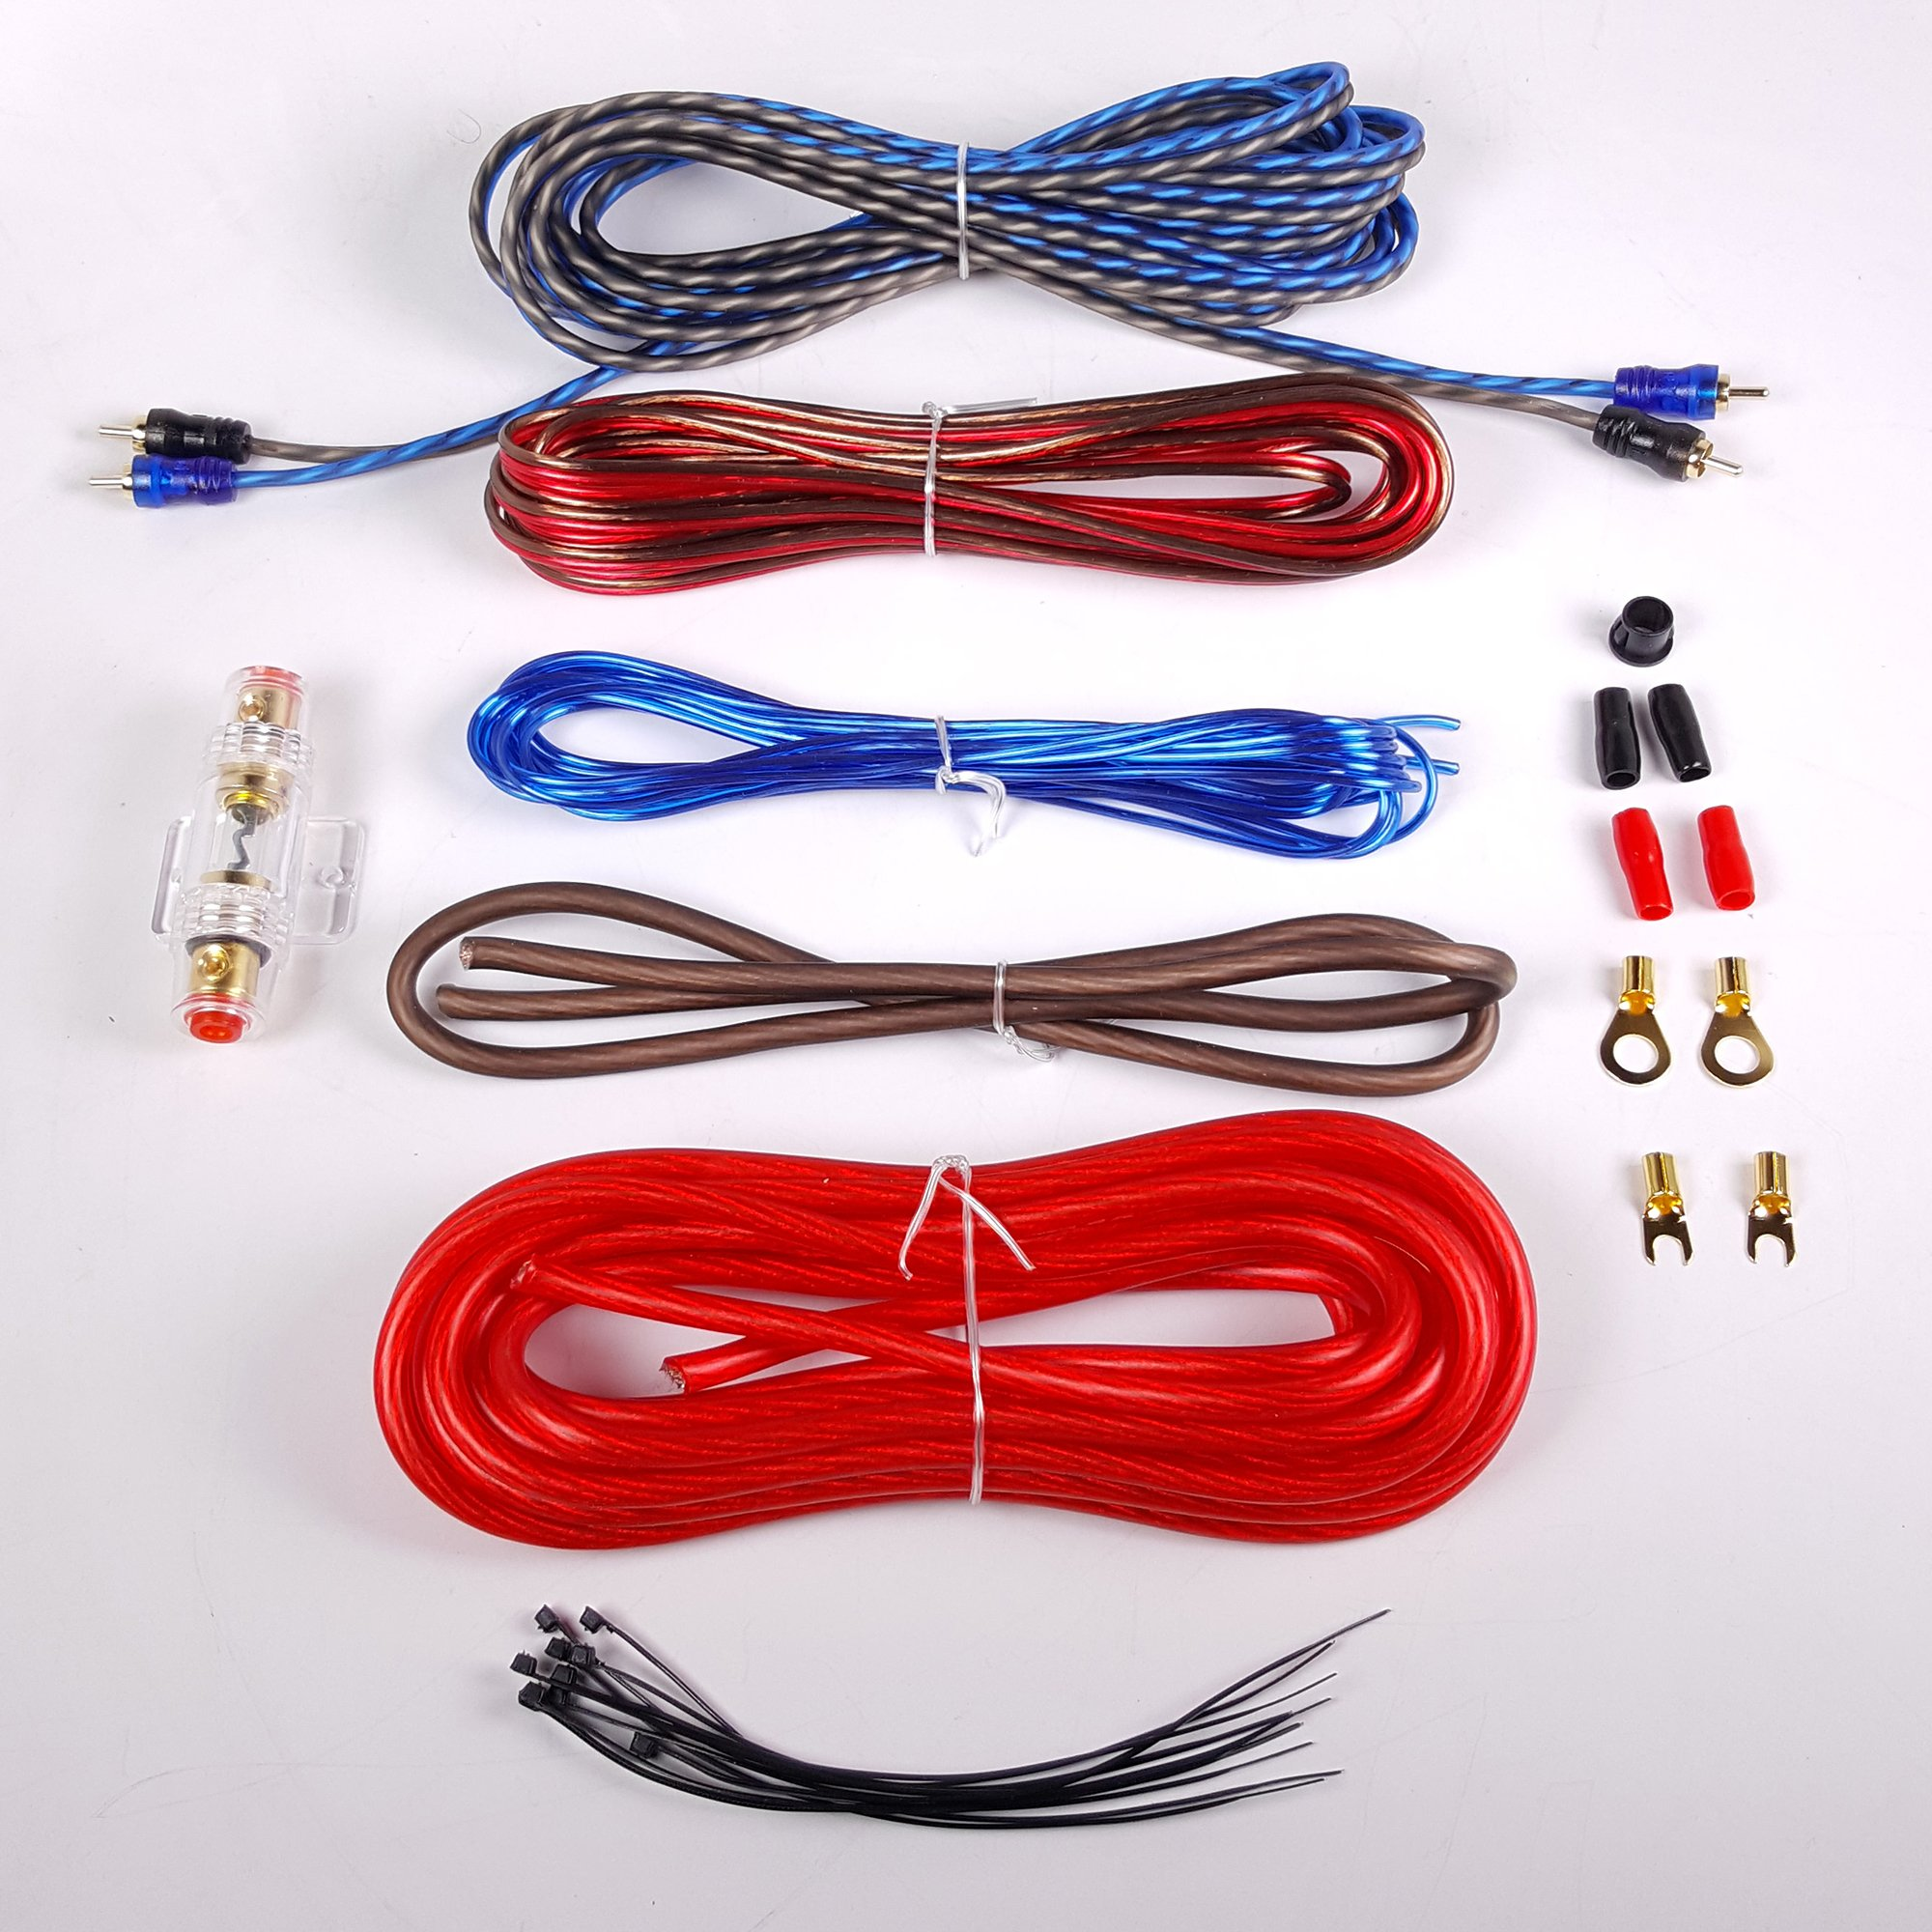 Gravity BGR-KIT8R 8 Gauge Amplifier Installation Kit with High Performance RCA and Speaker Wire